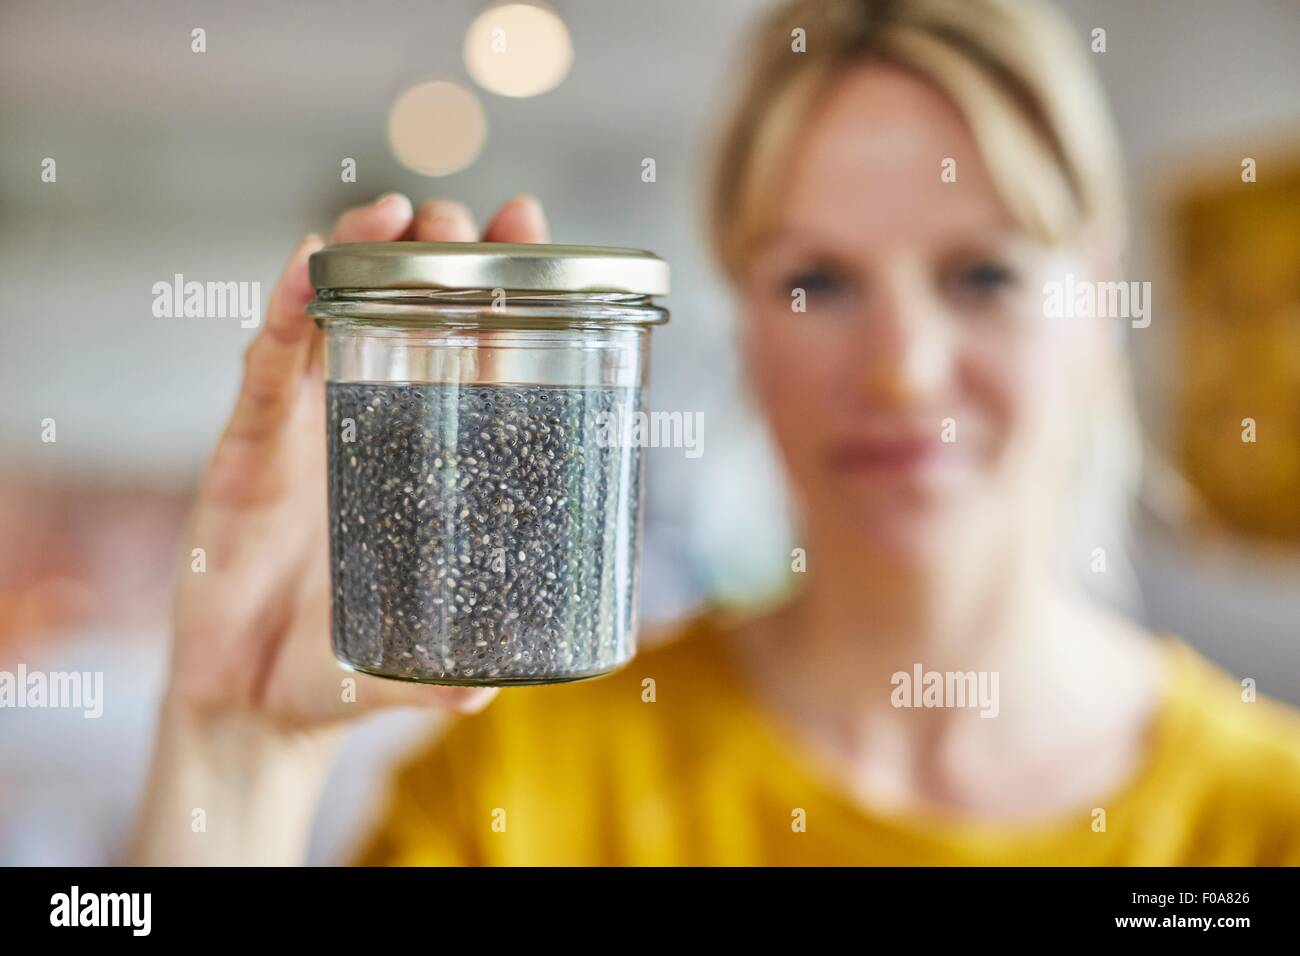 Mature woman holding up jar of seeds, focus on seeds - Stock Image